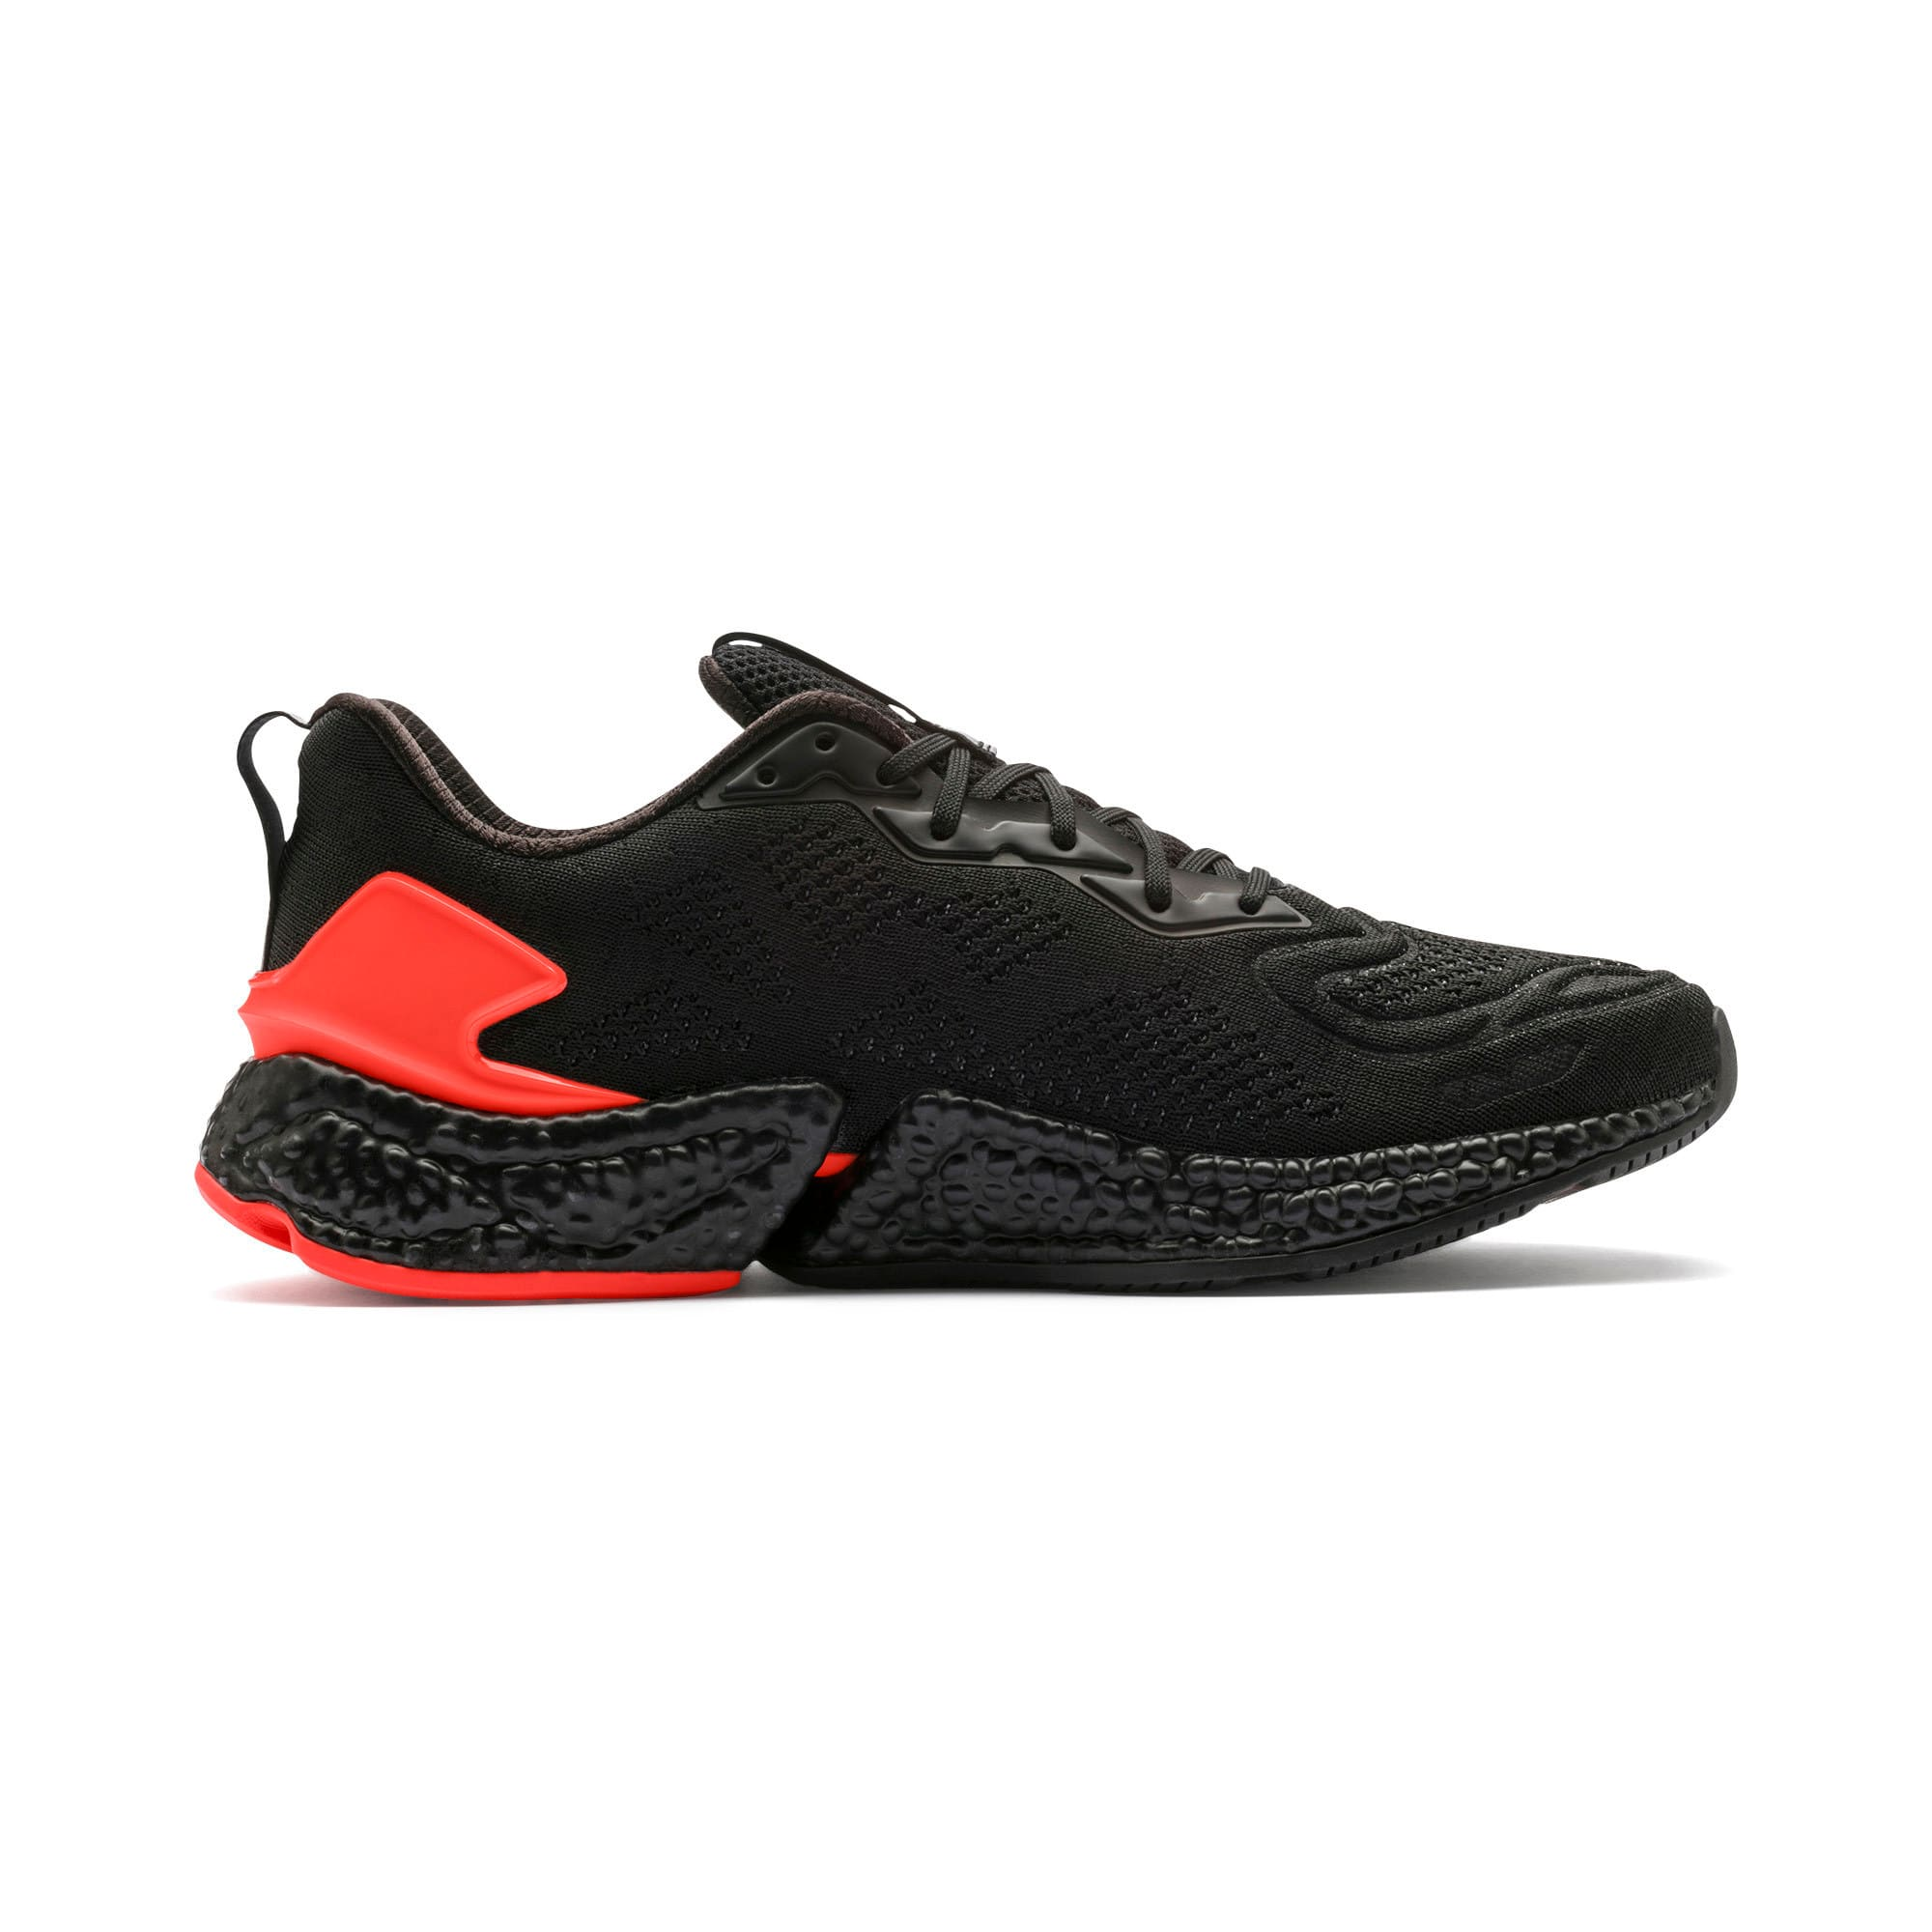 Thumbnail 6 of Chaussure de course HYBID SPEED Orbiter pour homme, Black-Nrgy Red-Yellow, medium